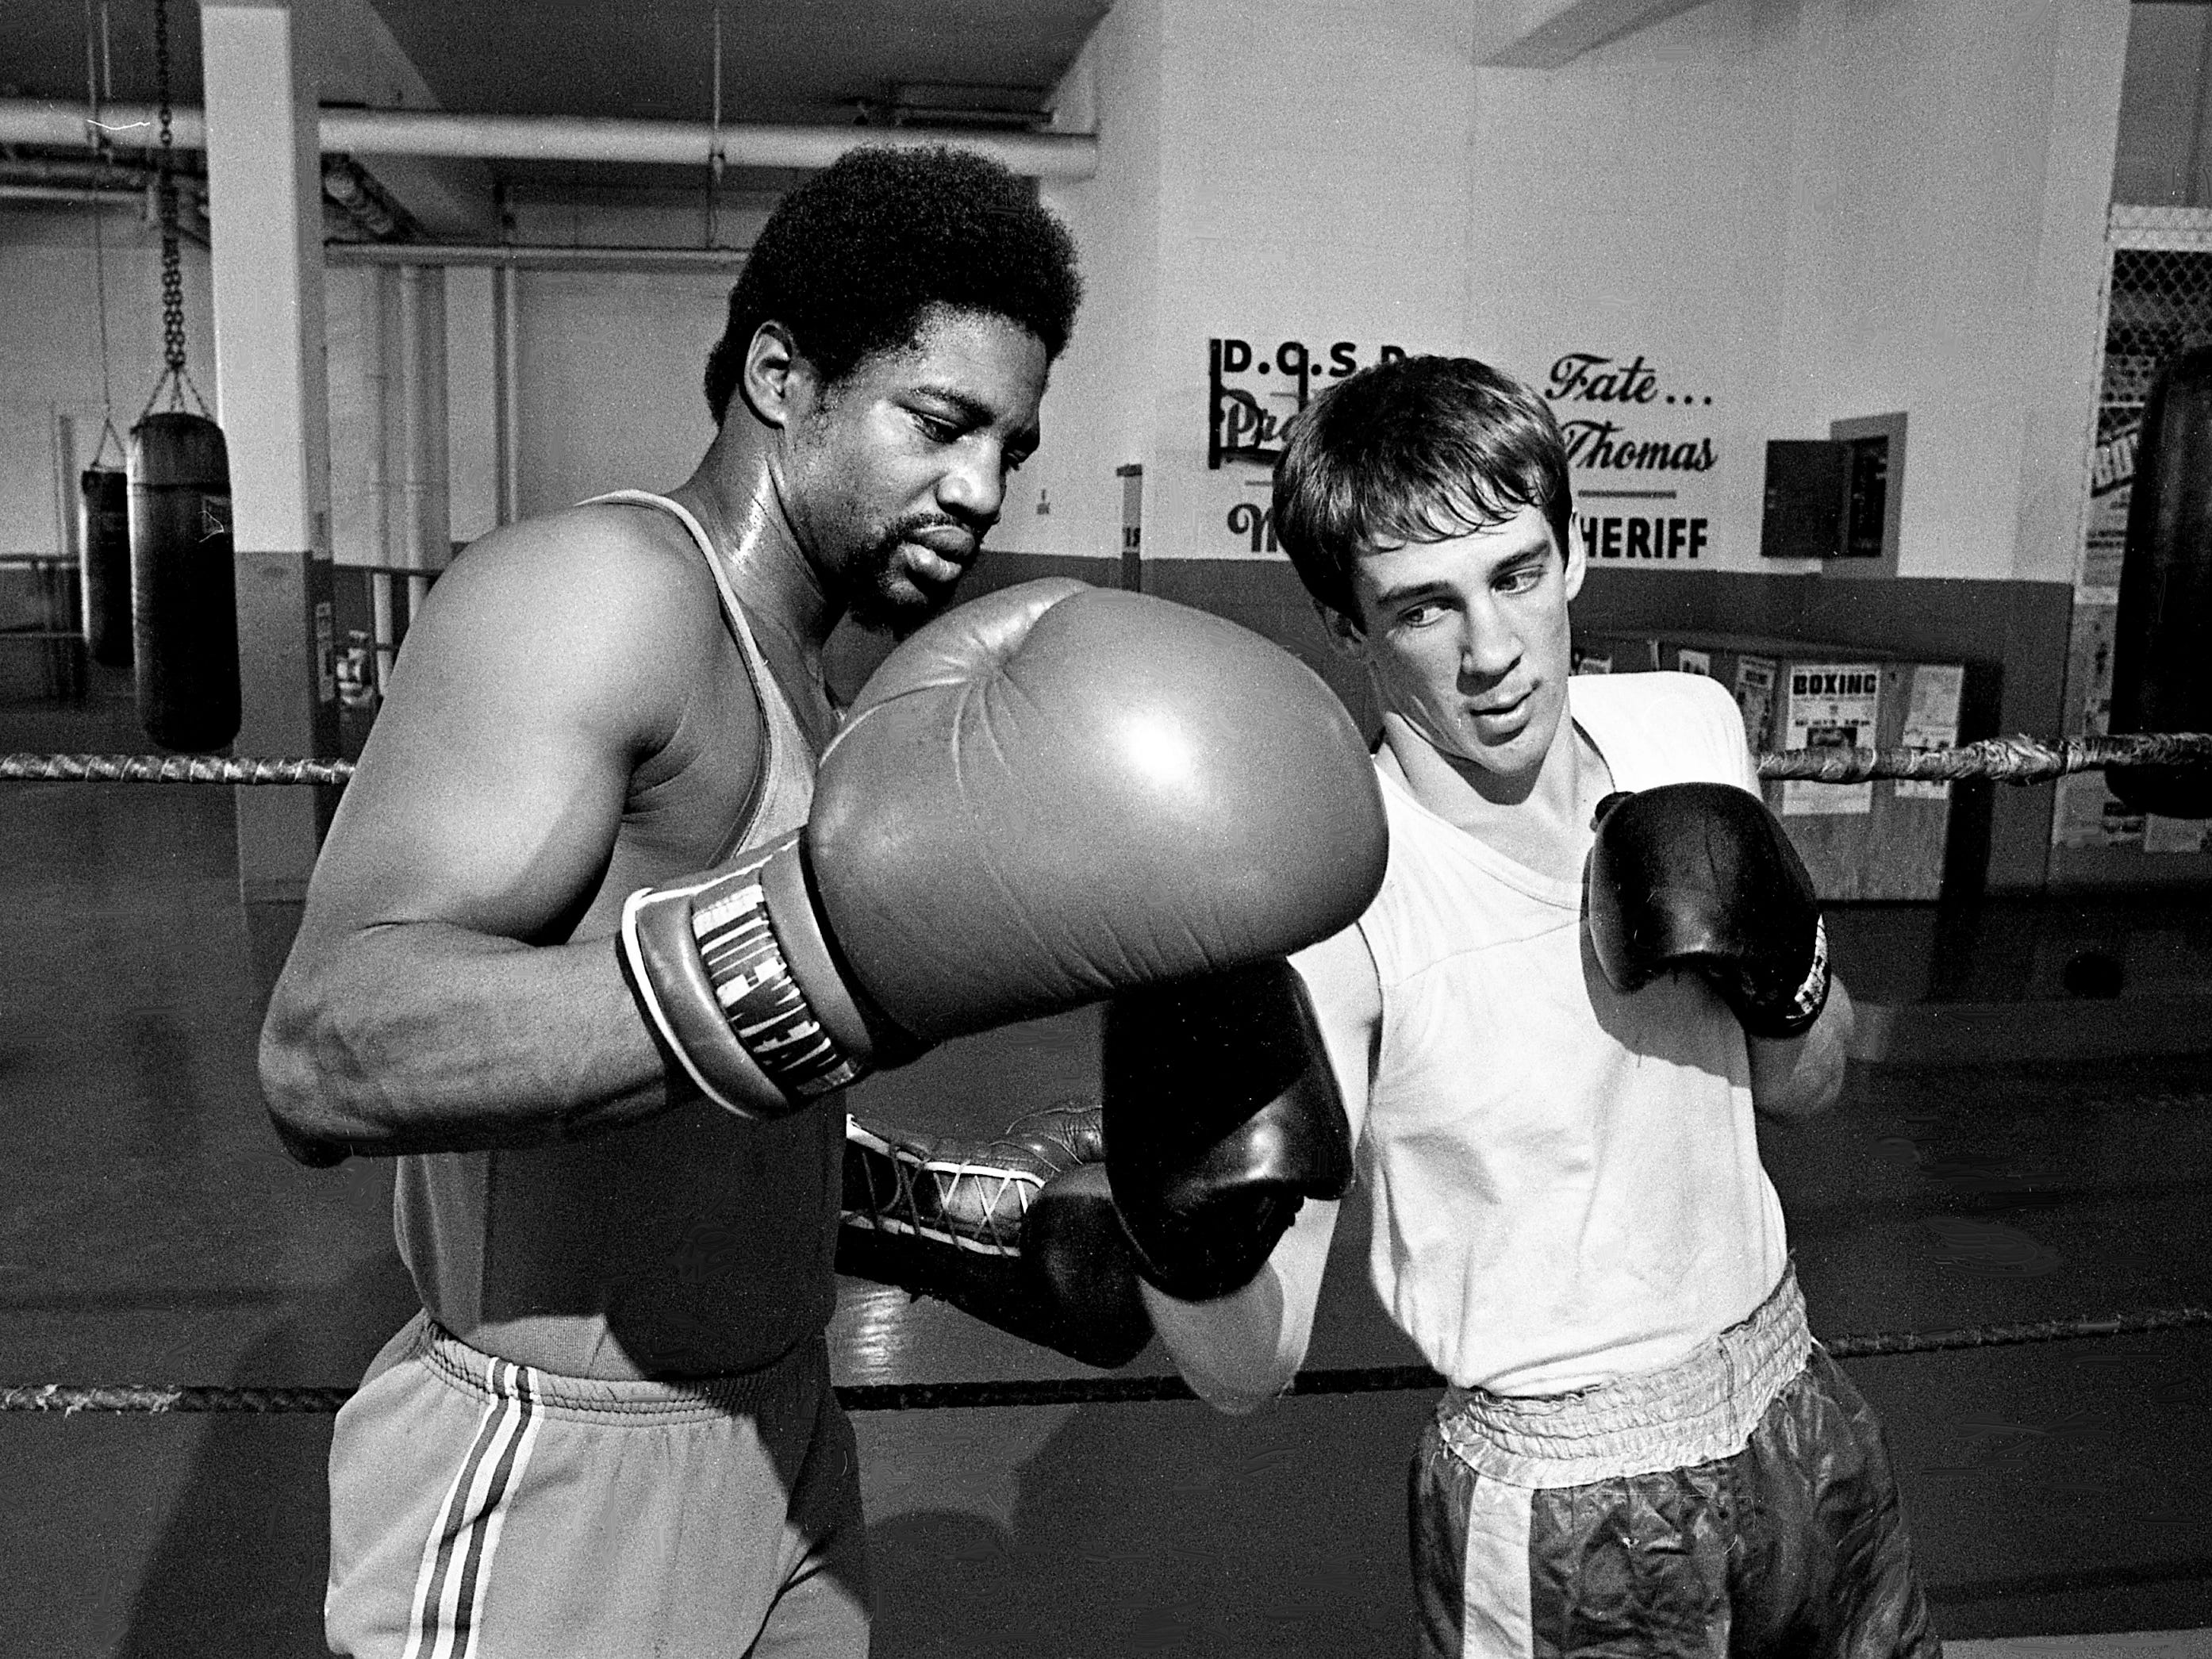 Clinton Jackson, left, gives pointers to one of his prized boxing students, Ray Loafman, during training at the Sheriff's Department Boxing Gym on Jan. 3, 1979. The pair will be in action Jan. 6 at the Fairgrounds Arena when the Sheriff's team hosts the U.S. Army boxers.